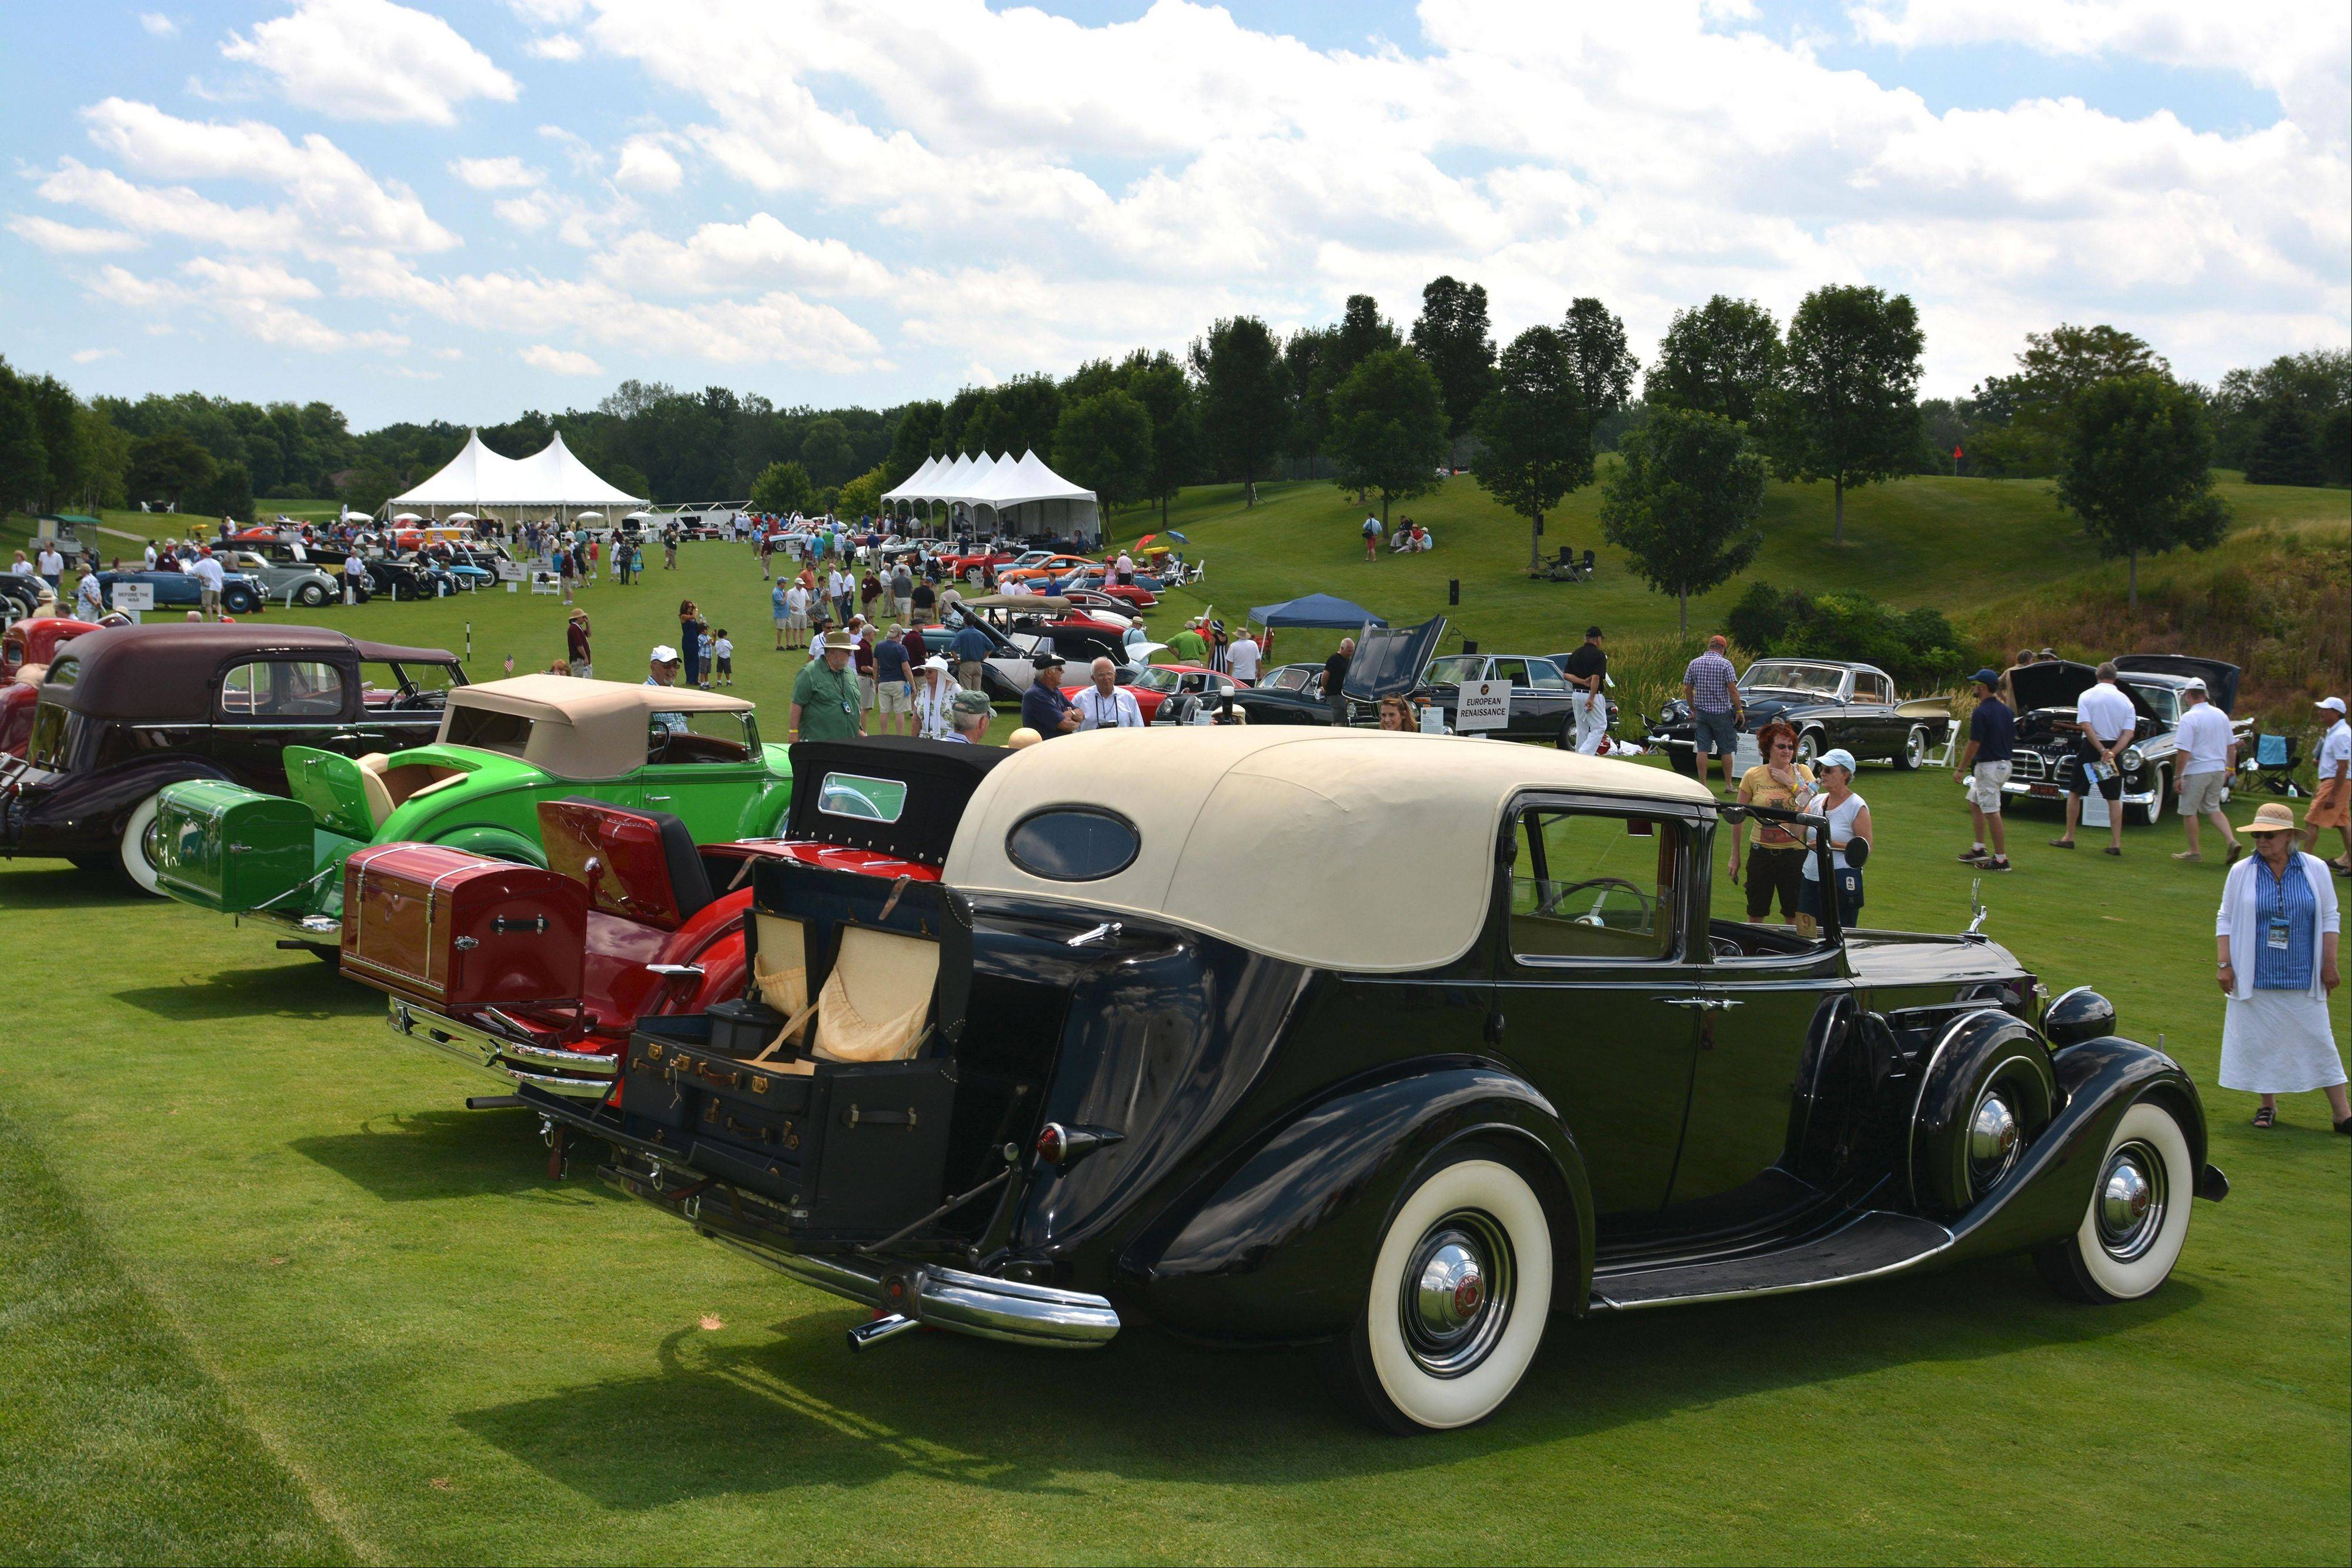 The fundraising event will move to Chicago's Northerly Island next year, to be re-christened the Concours d'Elegance of Chicago.